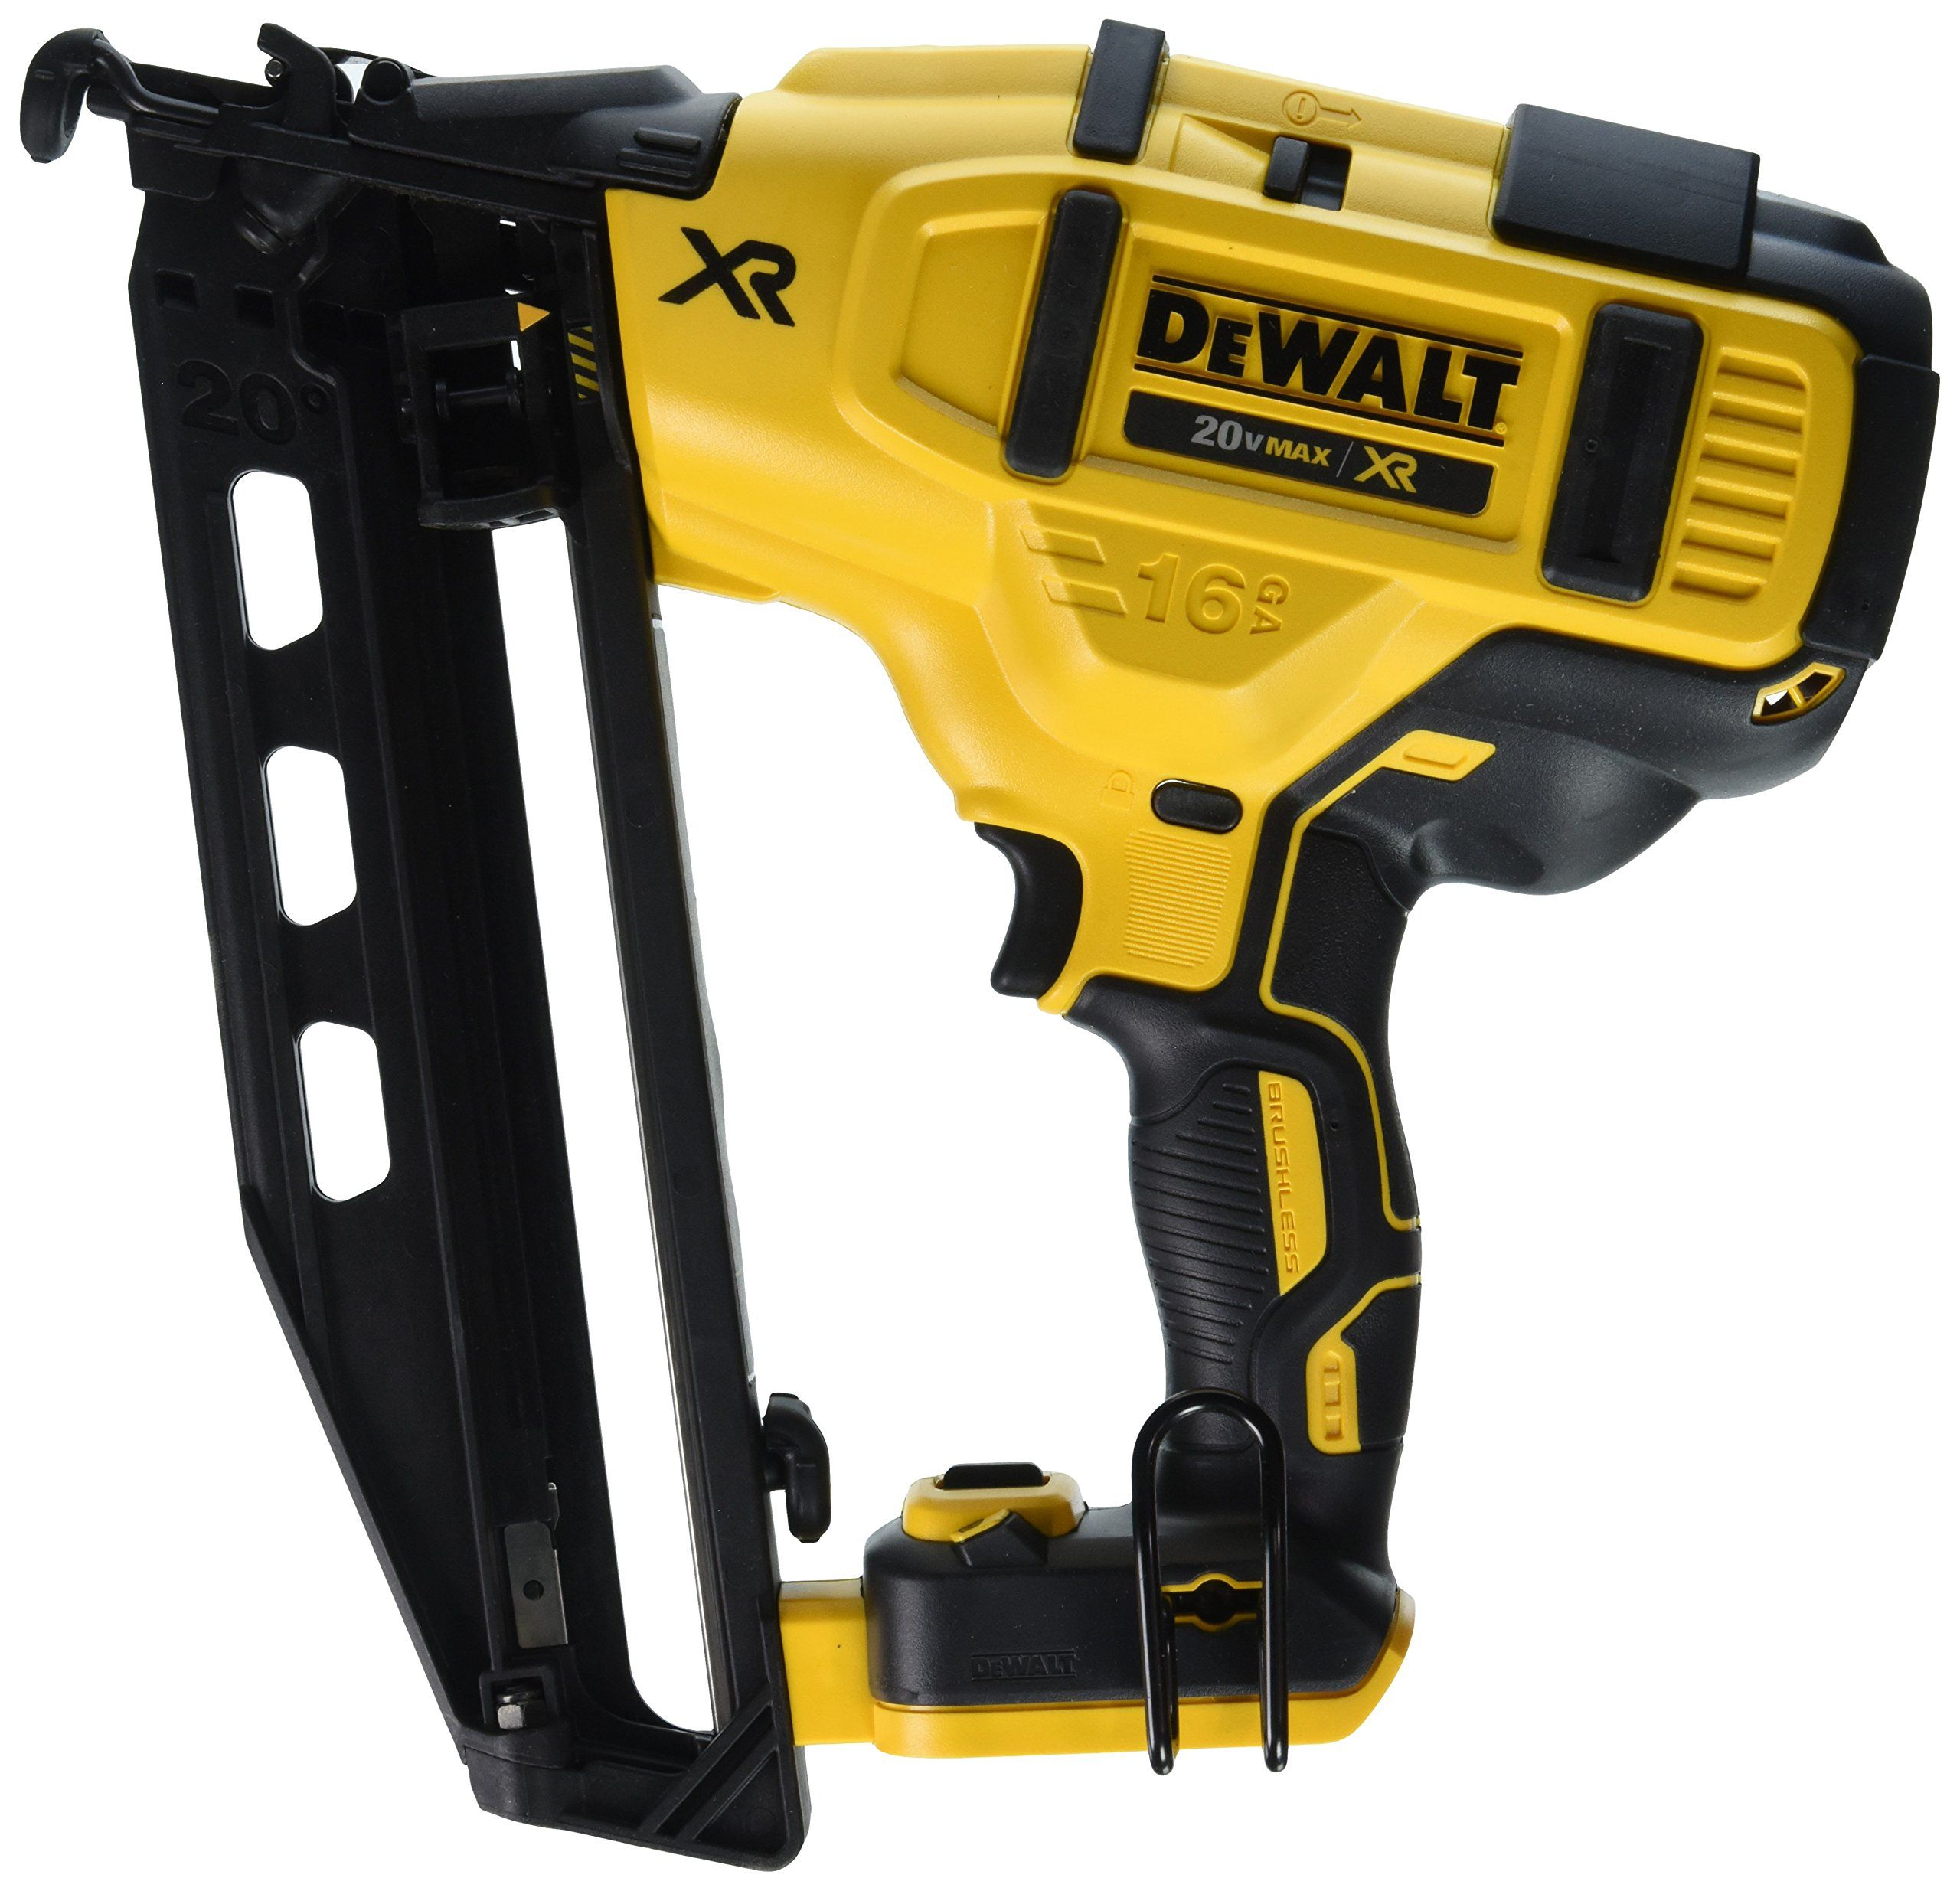 Dewalt Dcn660b 20v 16 Gauge 20a Finish Nailer To View Further For This Item Visit The Image Link This Is An Affiliate Link Finish Nailer Nailer Dewalt